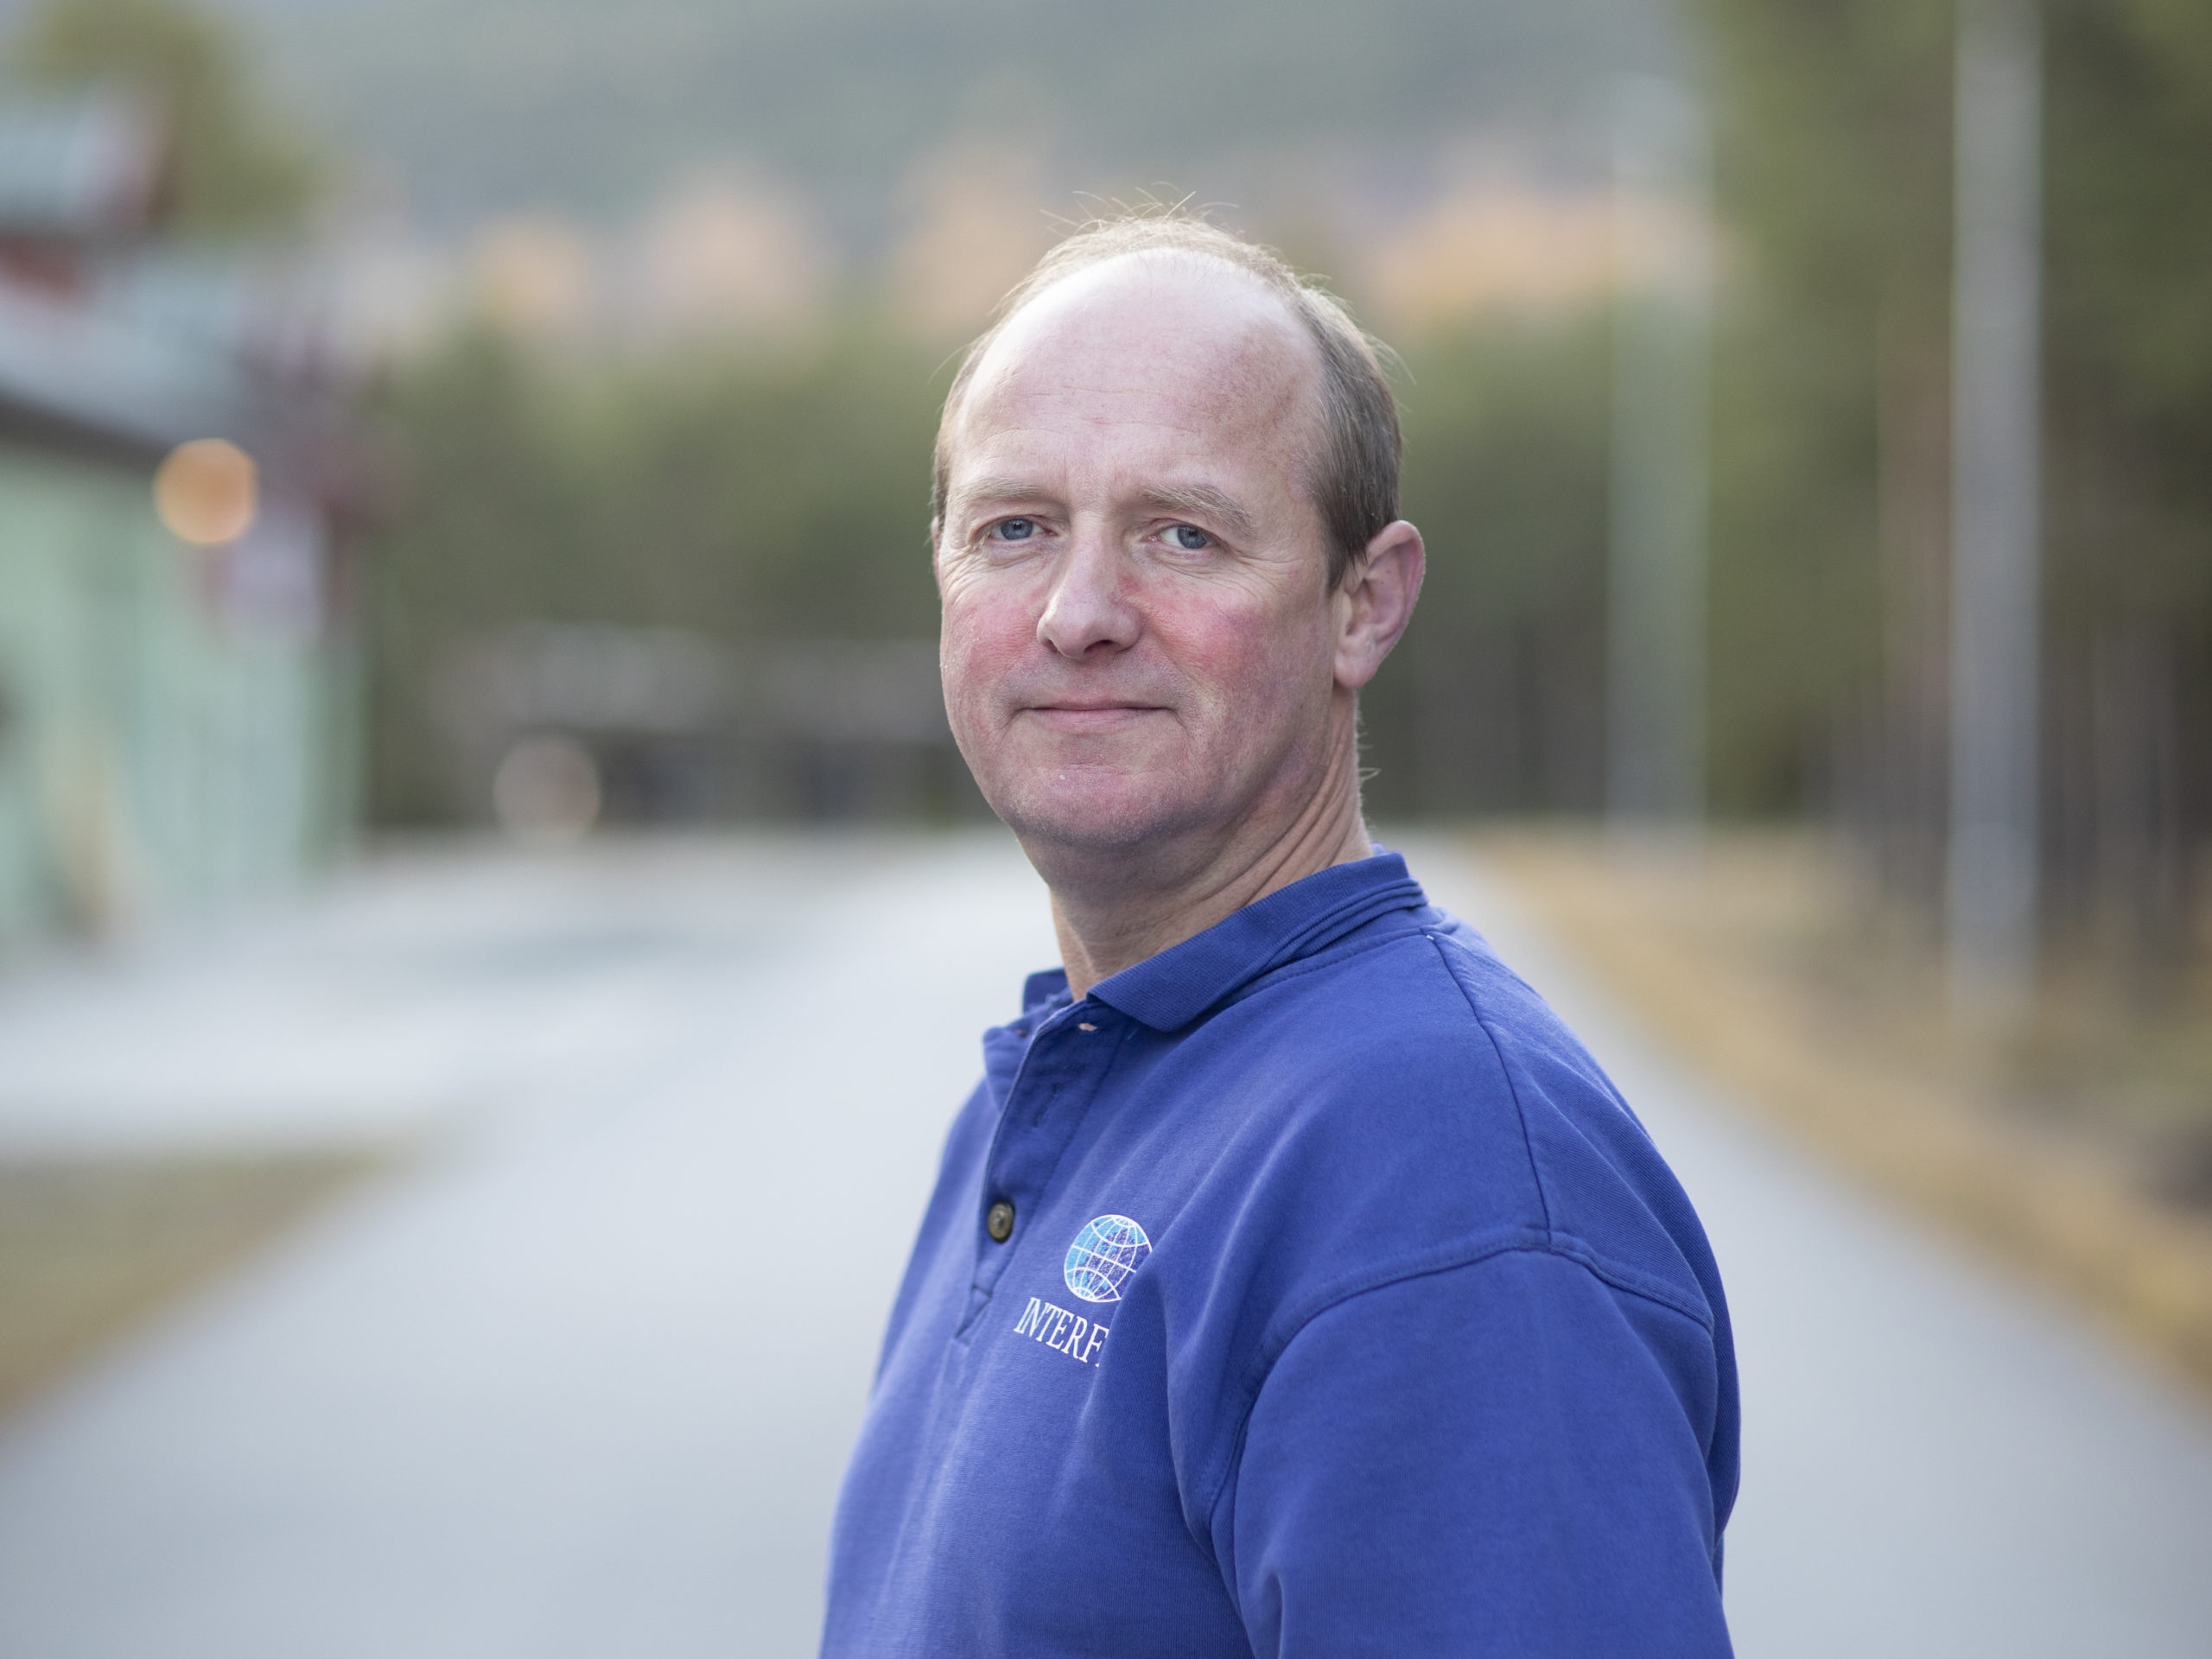 Kåre Haugen - profile photo